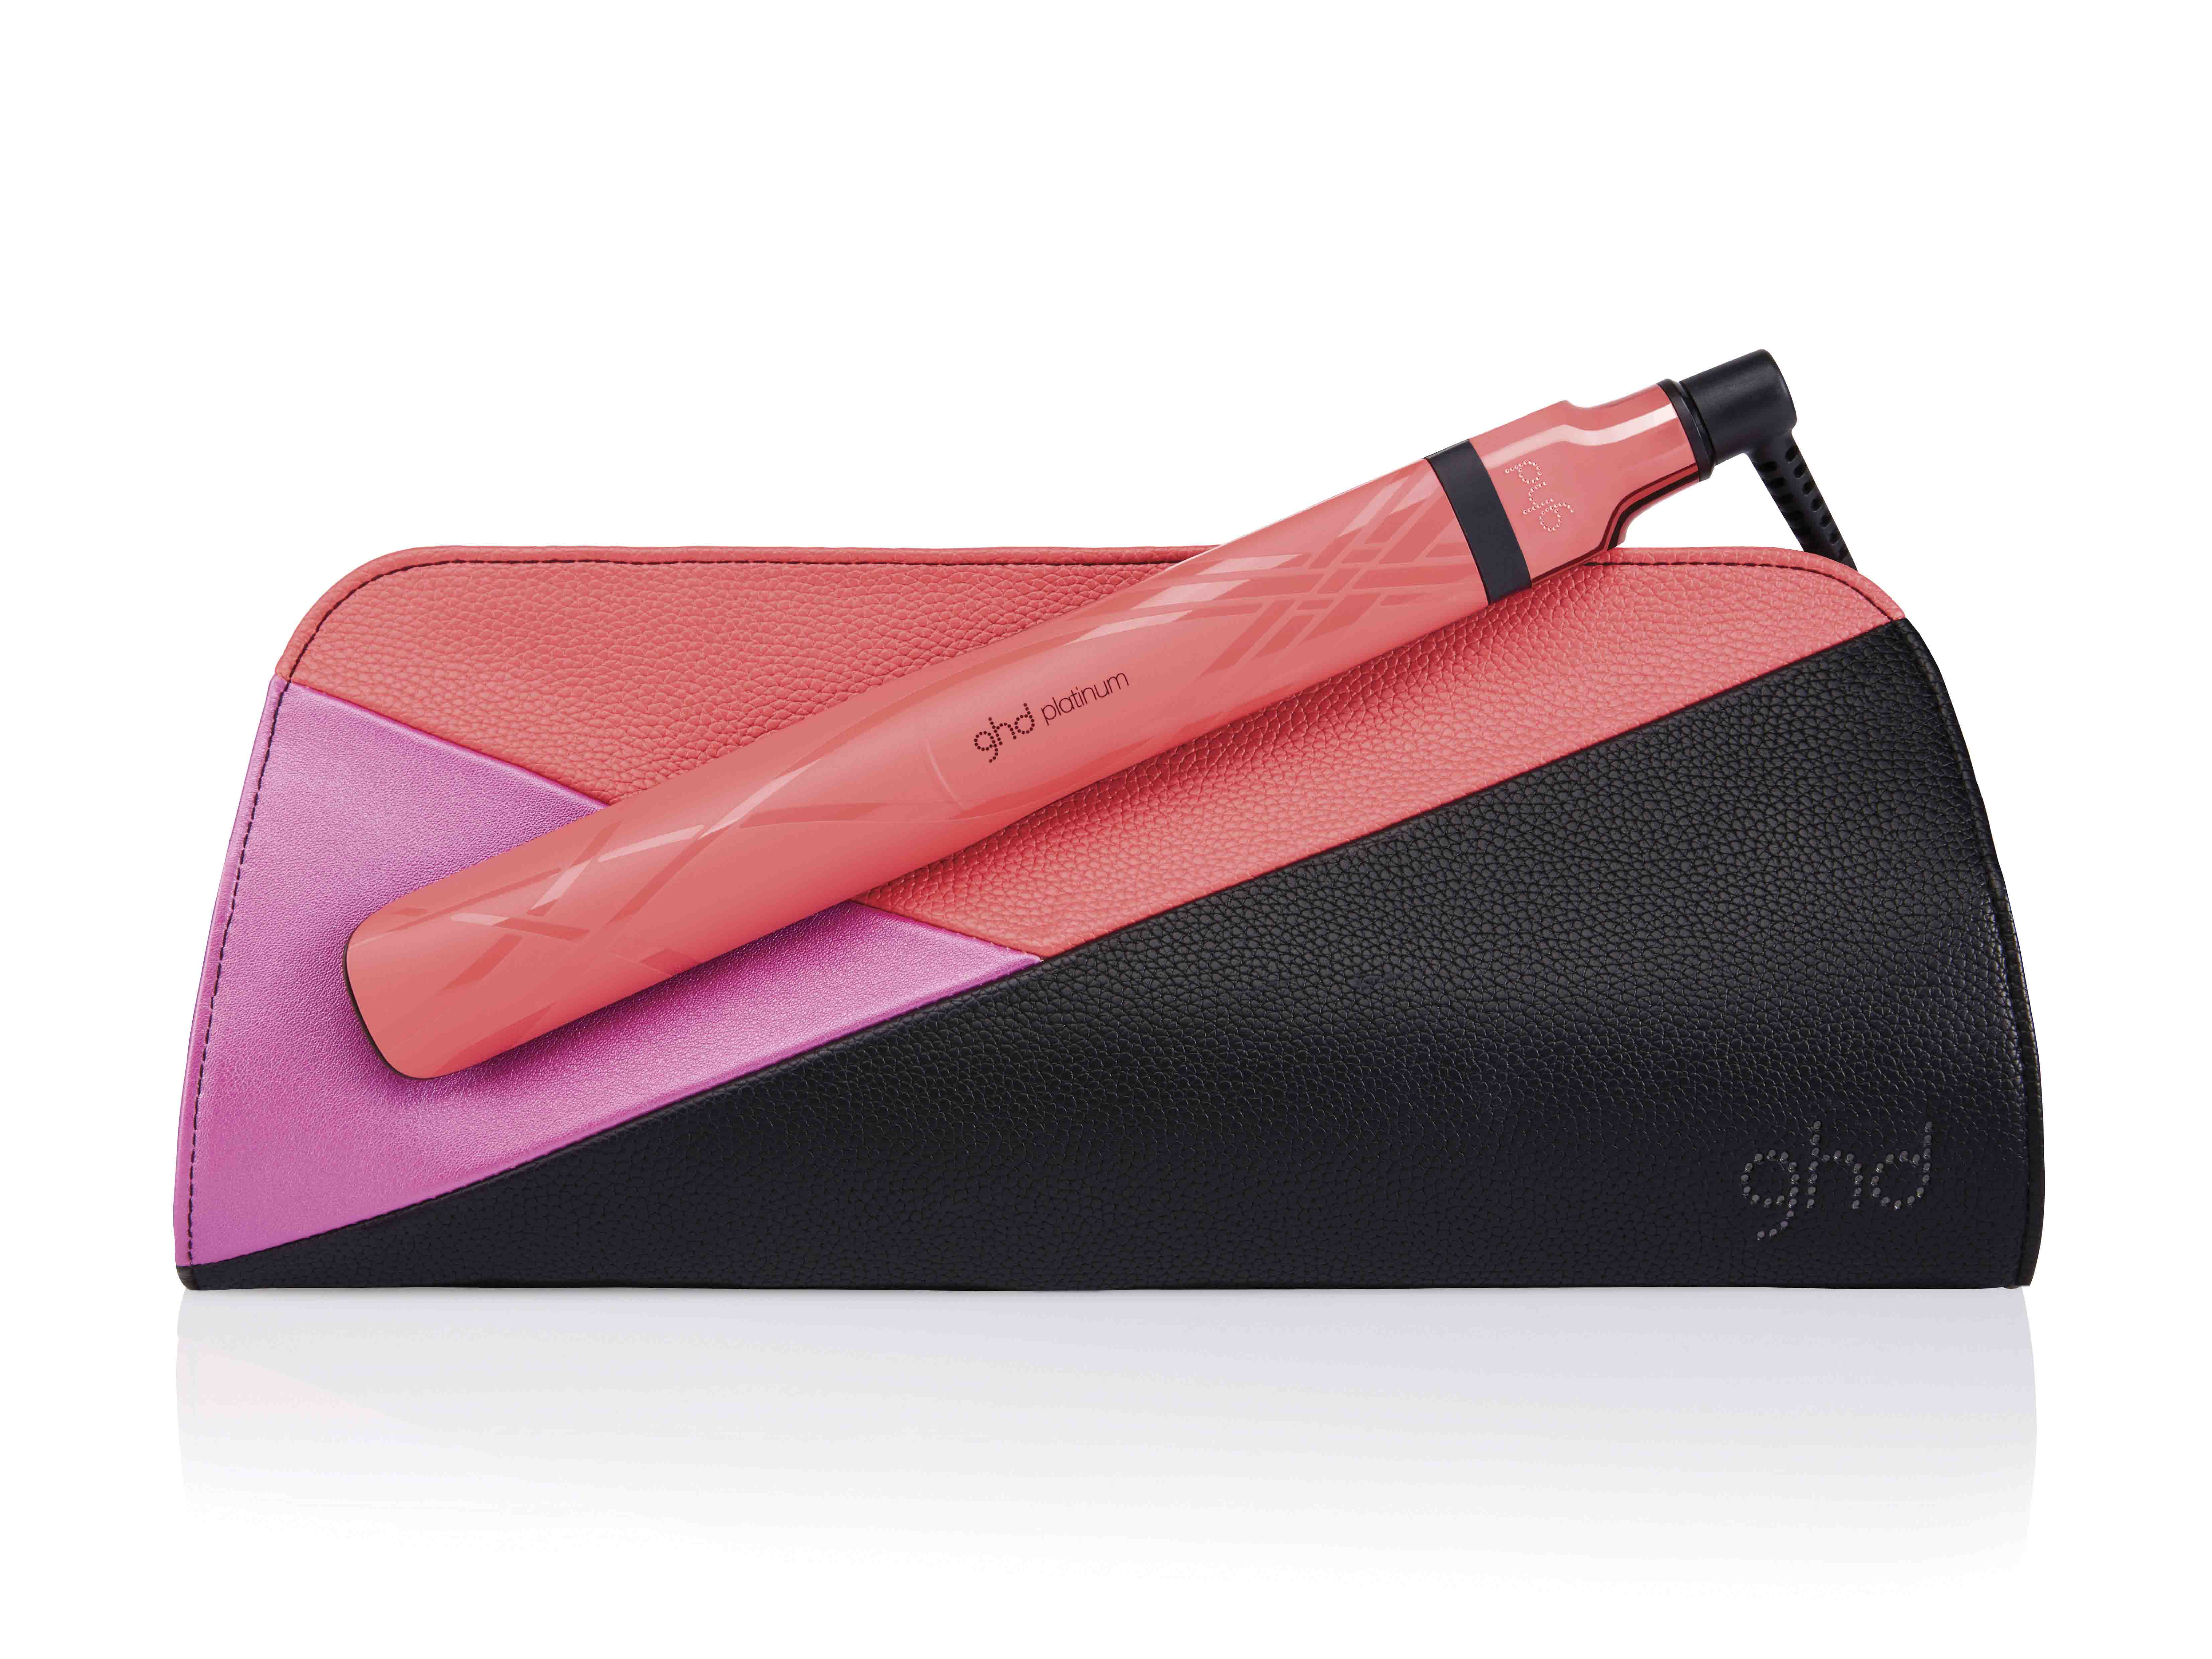 ghd pink blush platinum styler and roll bag_RRP $370